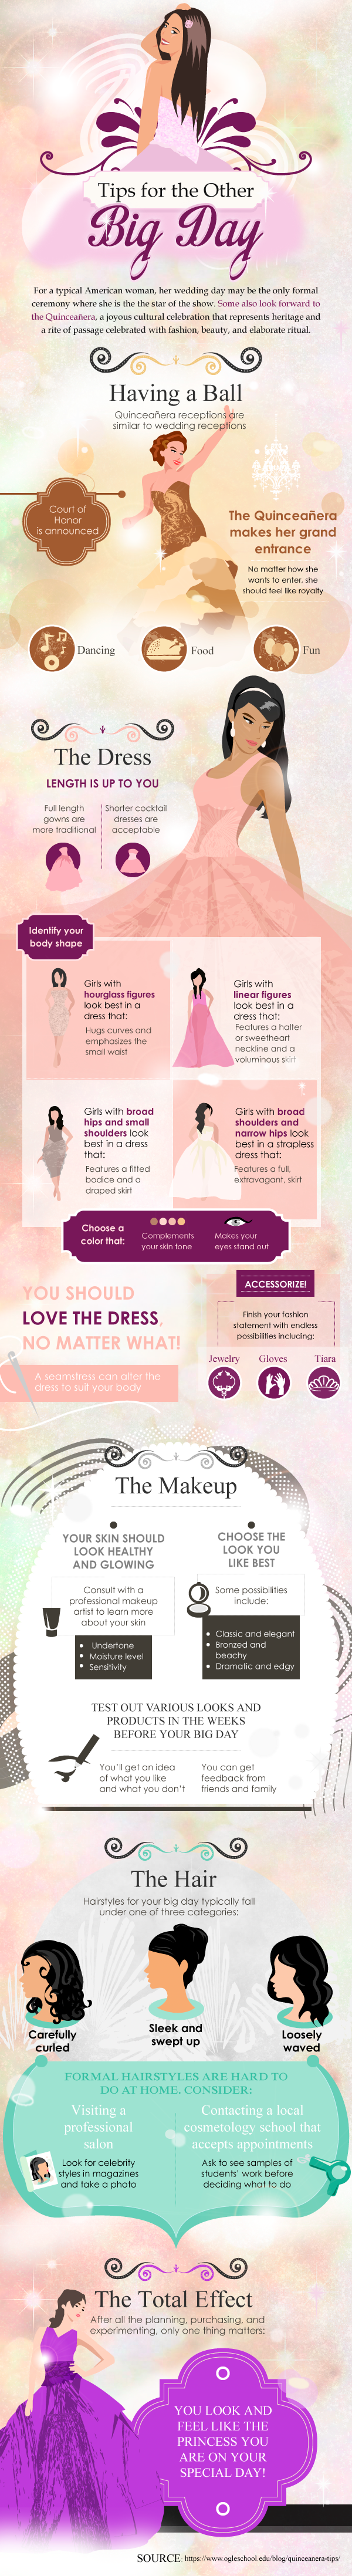 Quinceañera: Tips for the Other Big Day